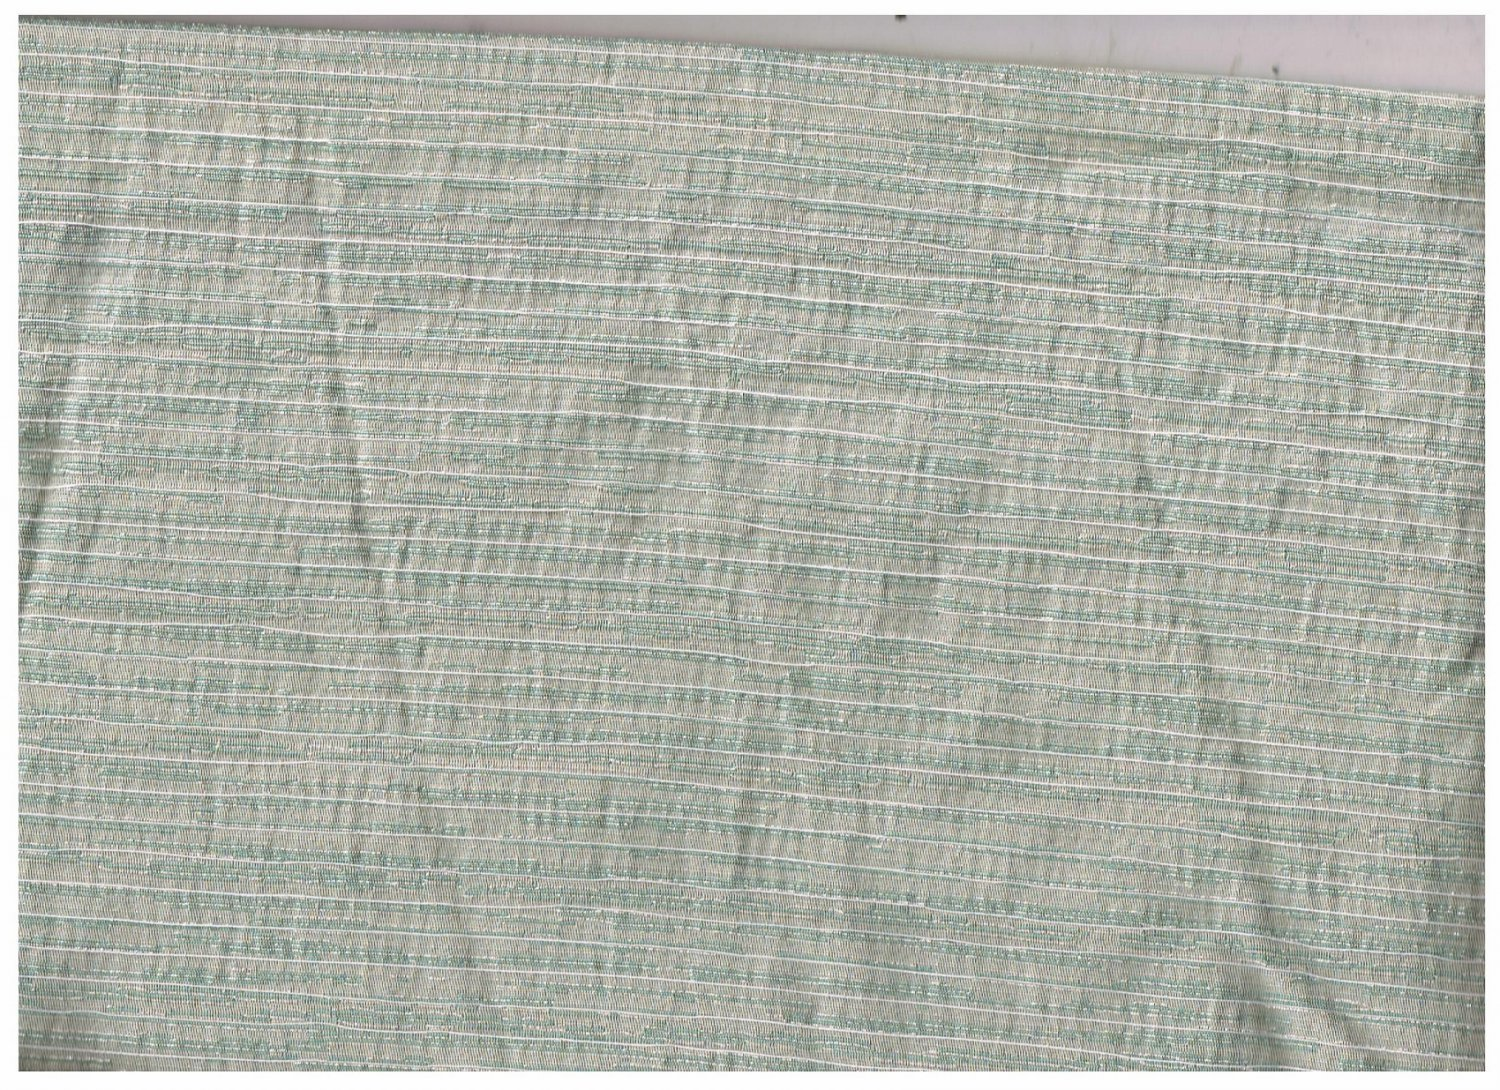 NEW-Home Decor Fabric Remnant-Sparkly Striped Blues-3yds x 47in-Crafting (#26)